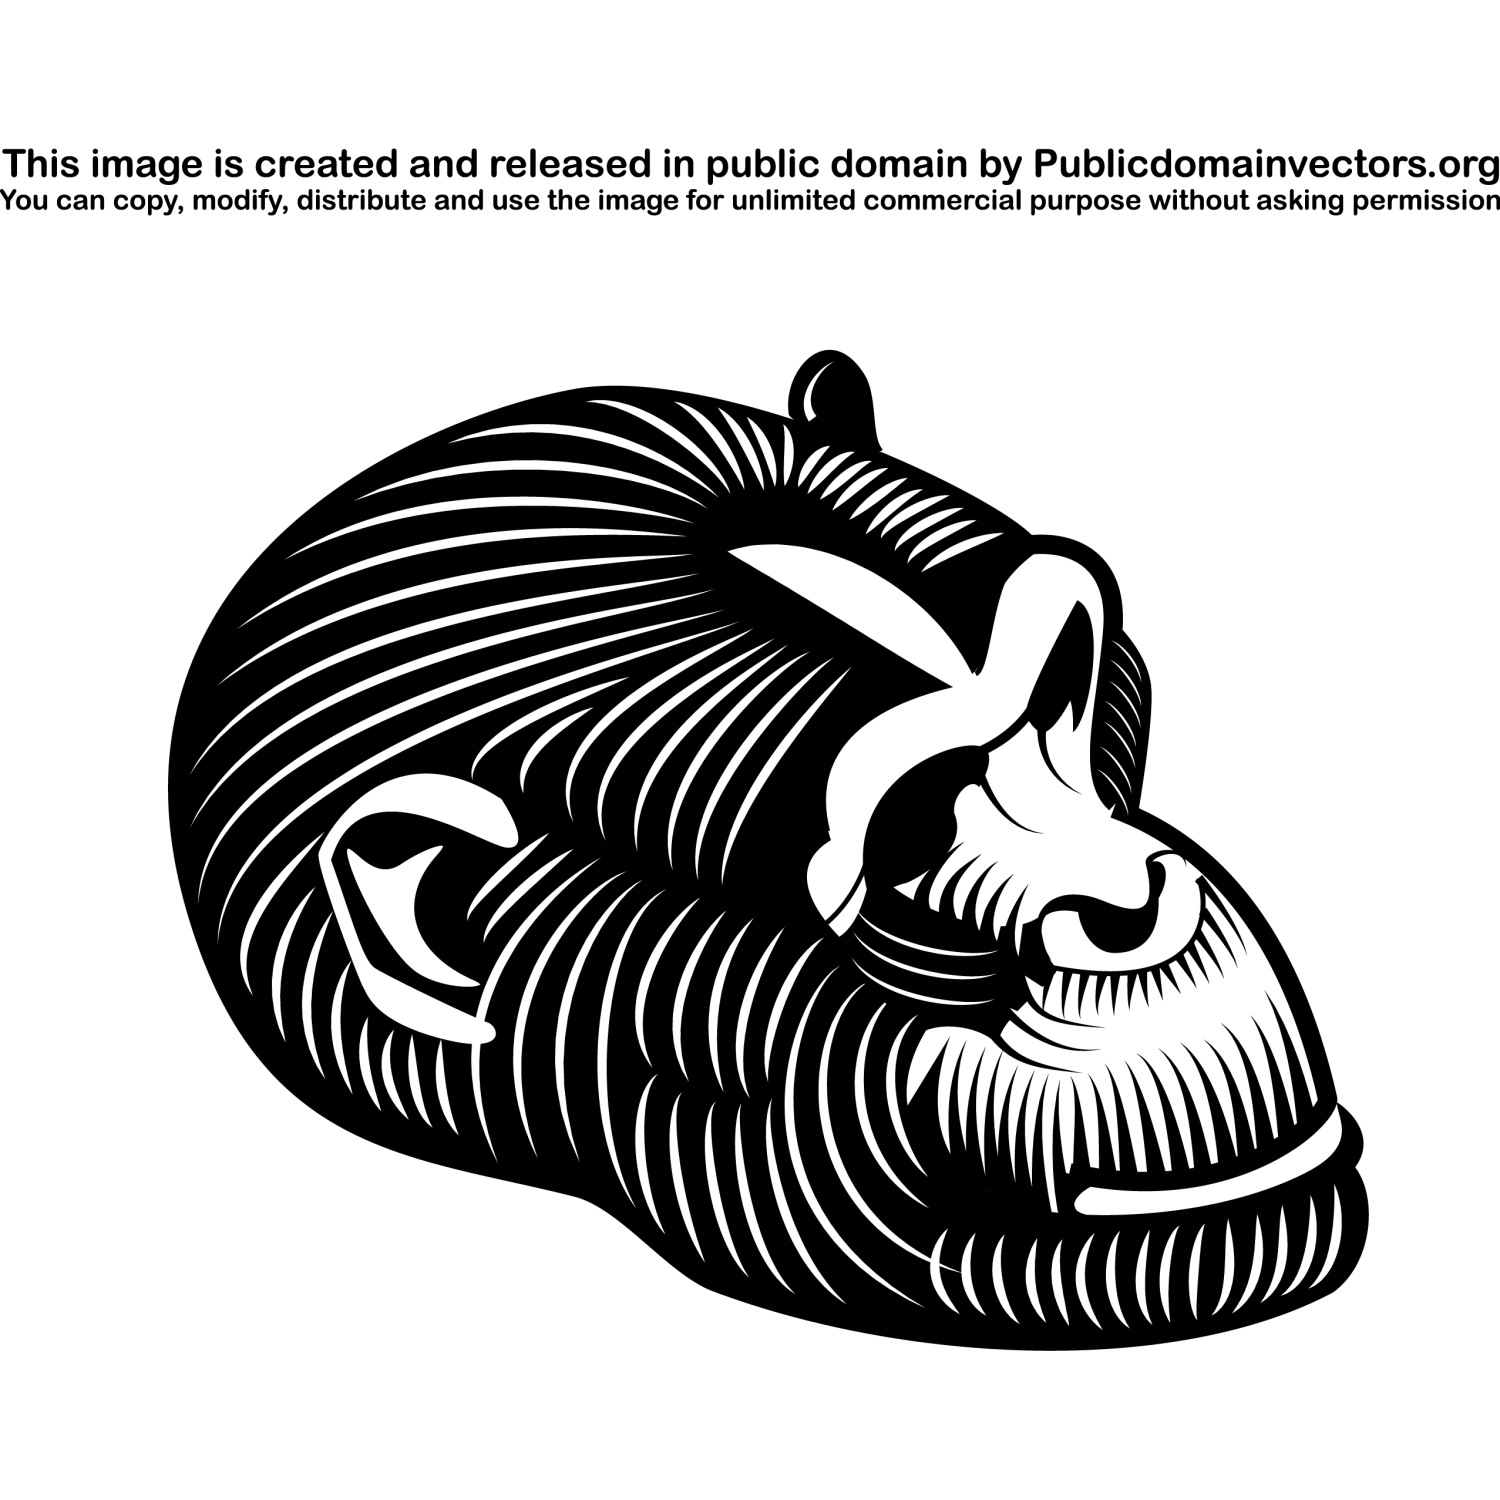 Black and white vector illustration of a gorilla's head